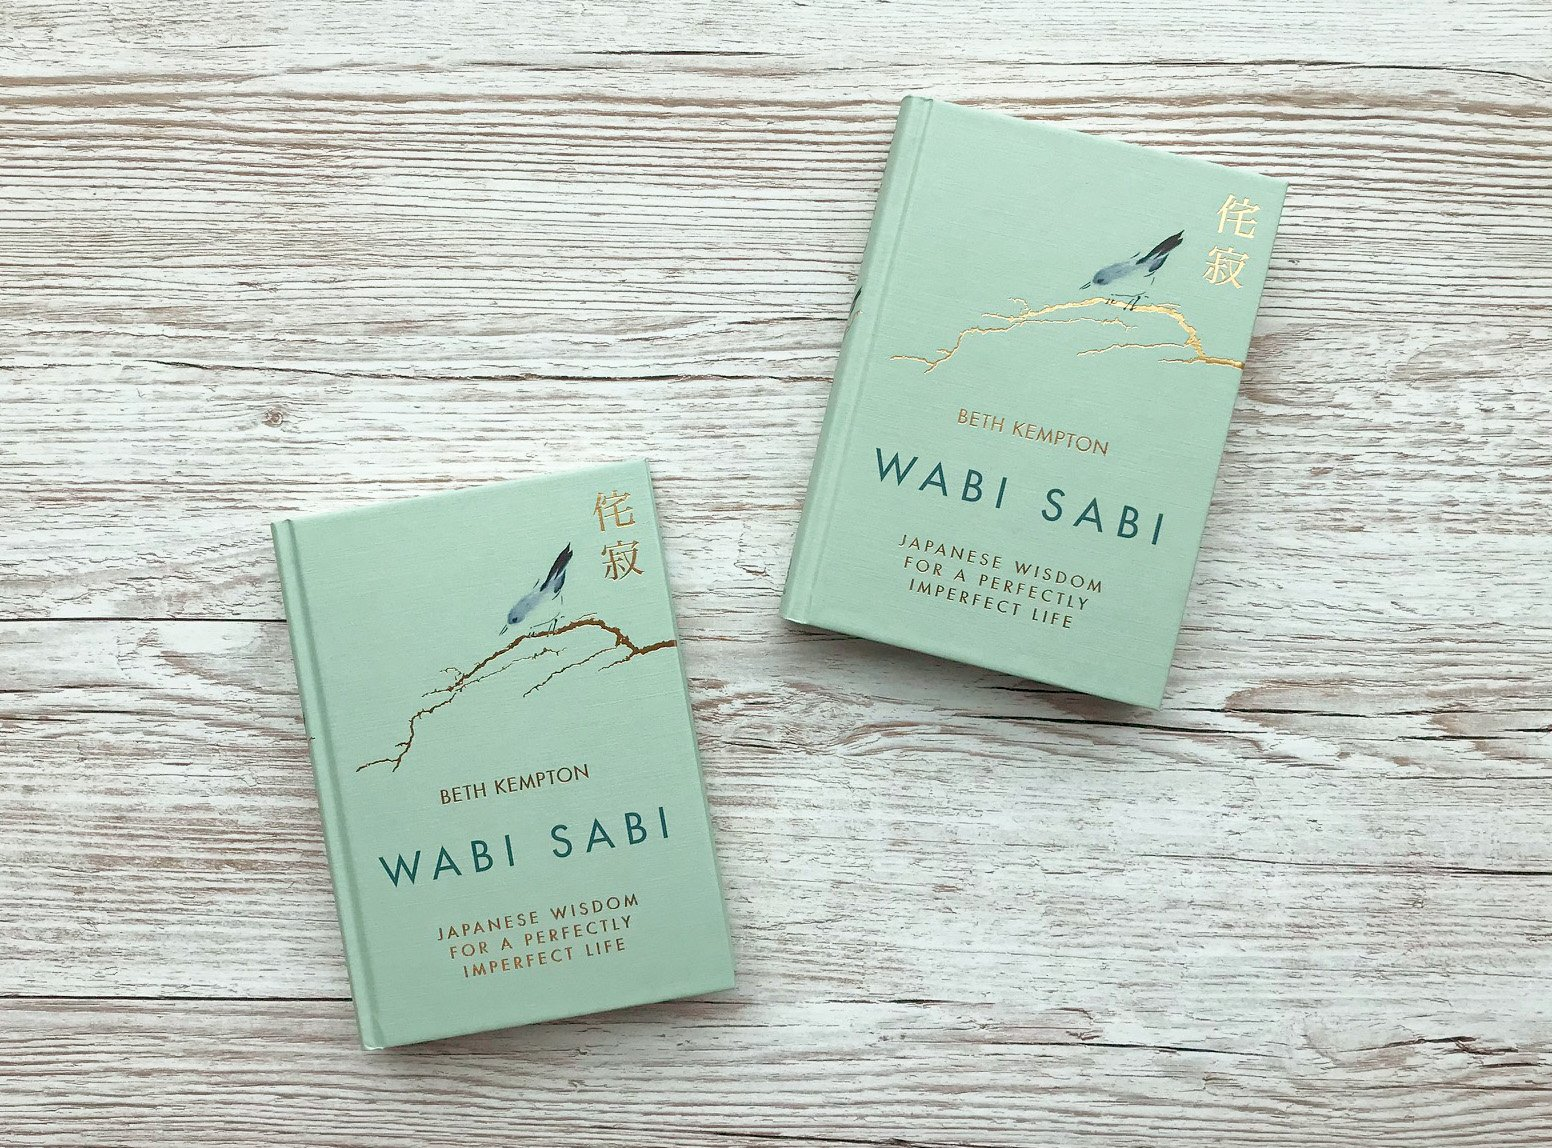 db85ded50c Wabi Sabi  Japanese Wisdom for a Perfectly Imperfect Life  Amazon.co.uk   Beth Kempton  9780349421001  Books